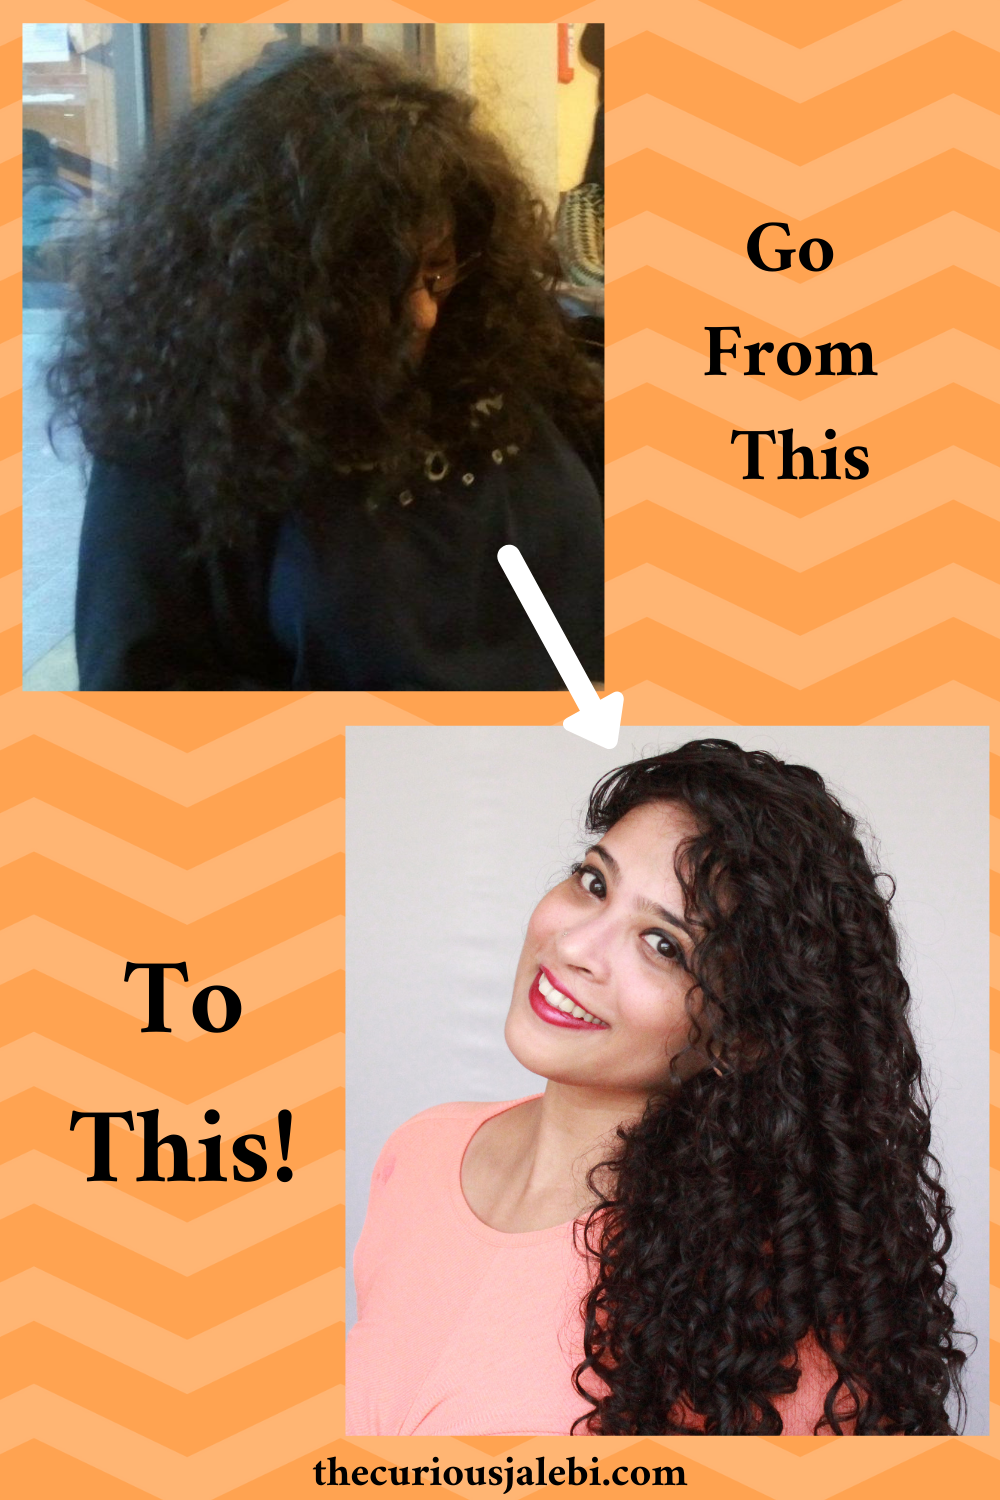 a94e916f14d4dfebd4d5da1aa9b81da9 - How To Get The Frizz Out Of My Curly Hair